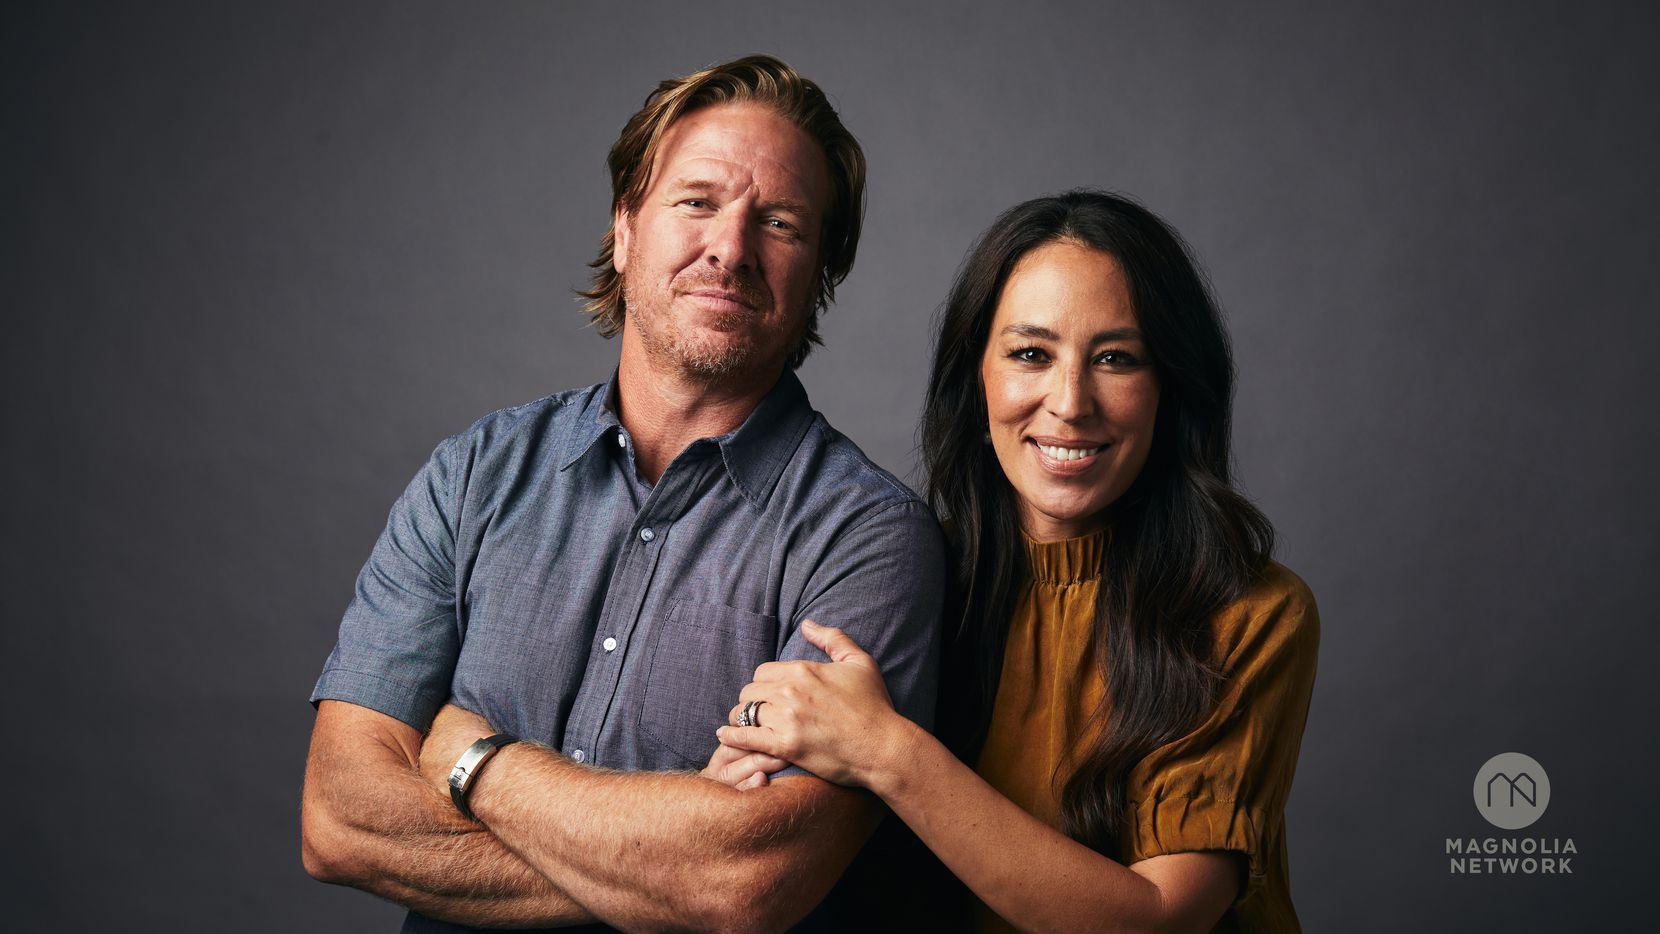 Chip and Joanna Gaines brought back their Fixer Upper show this year with a new season coming July 15 on their Magnolia Network with Discovery.